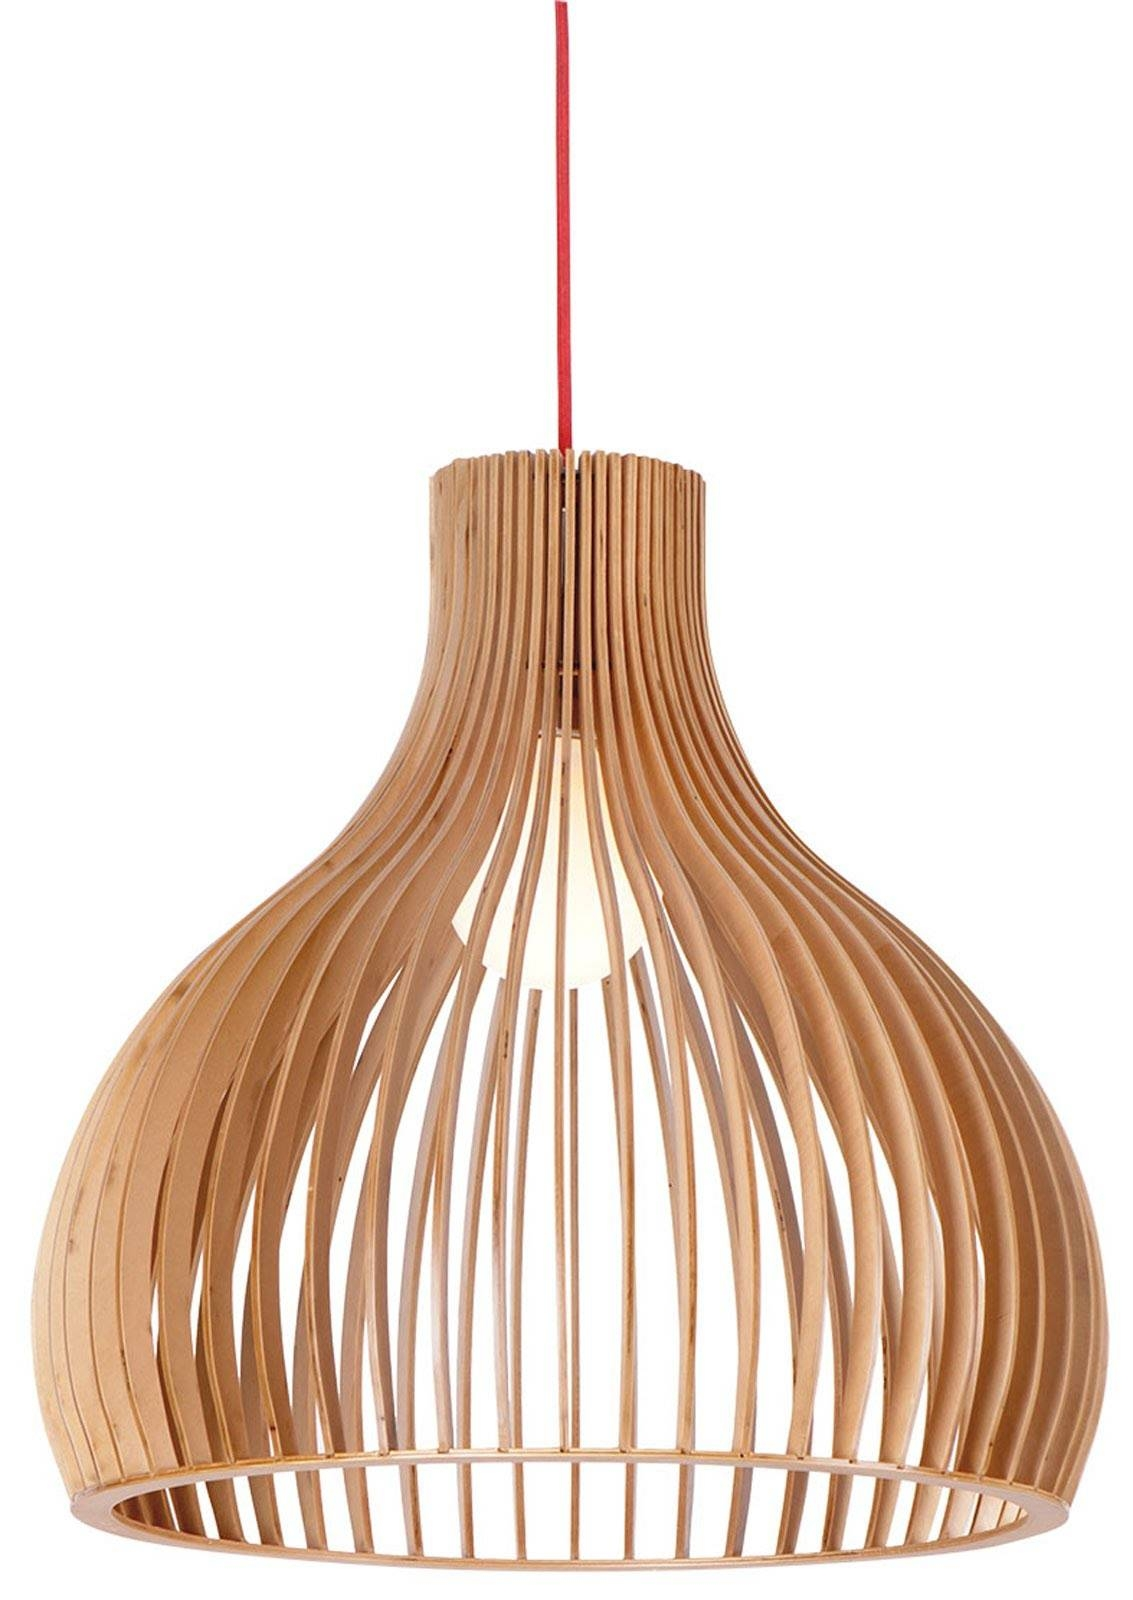 Buy Wood Pendant Light In Melbourne [Malmo] - Youtube for Pendant Lights Melbourne (Image 3 of 15)